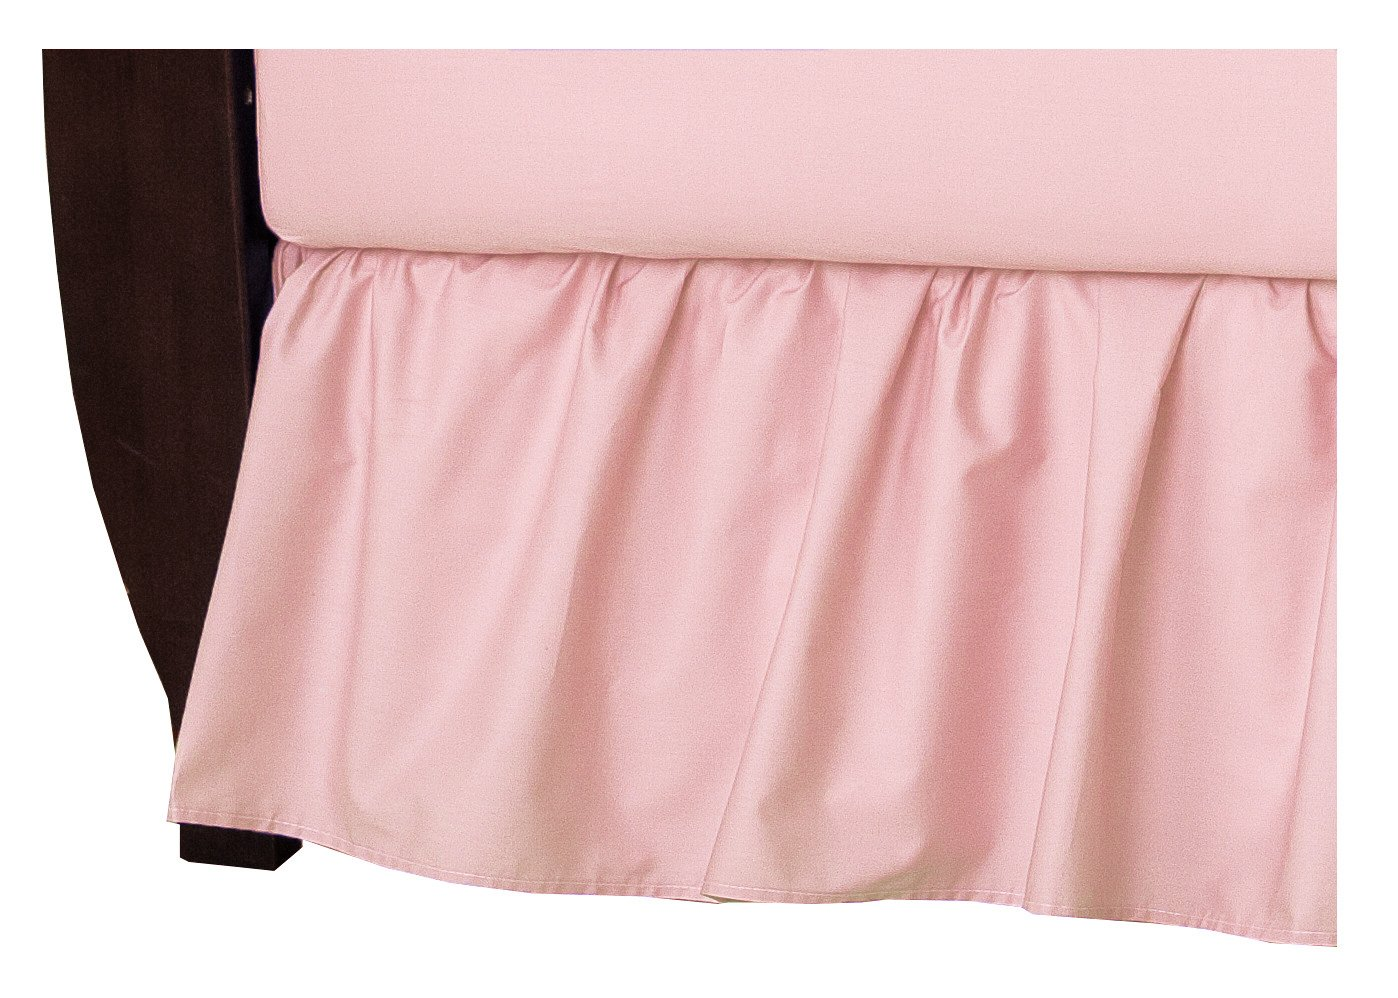 American Baby Company Percale Dust Ruffle - Blush